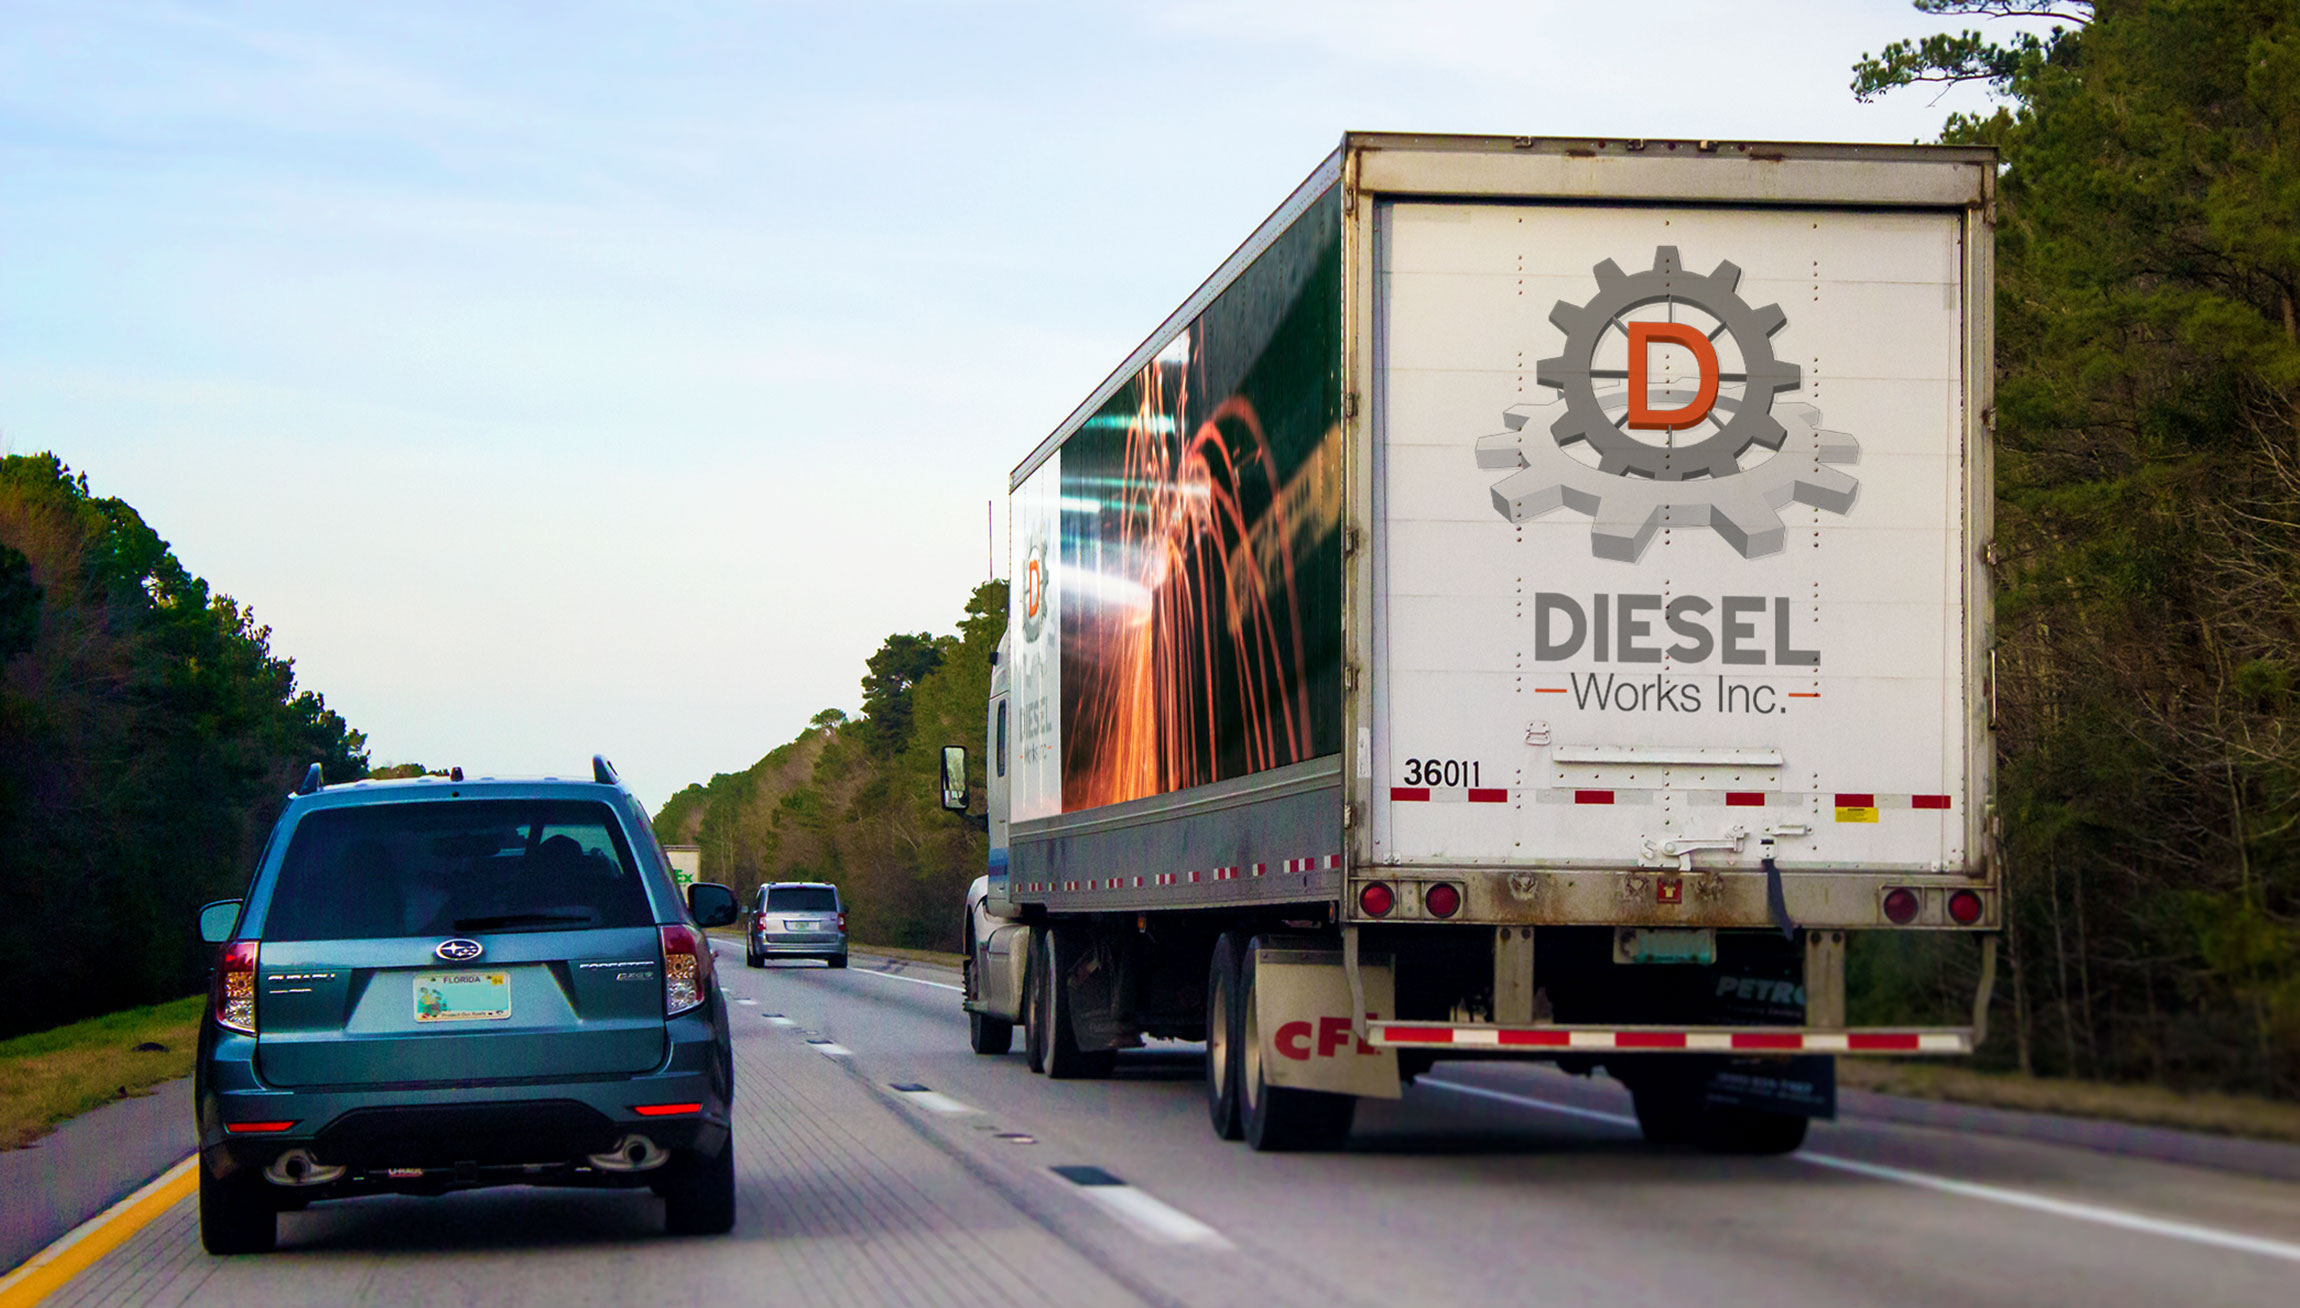 Printing and Design - Vinyl Mockups on a trailer for Diesel Works Inc.